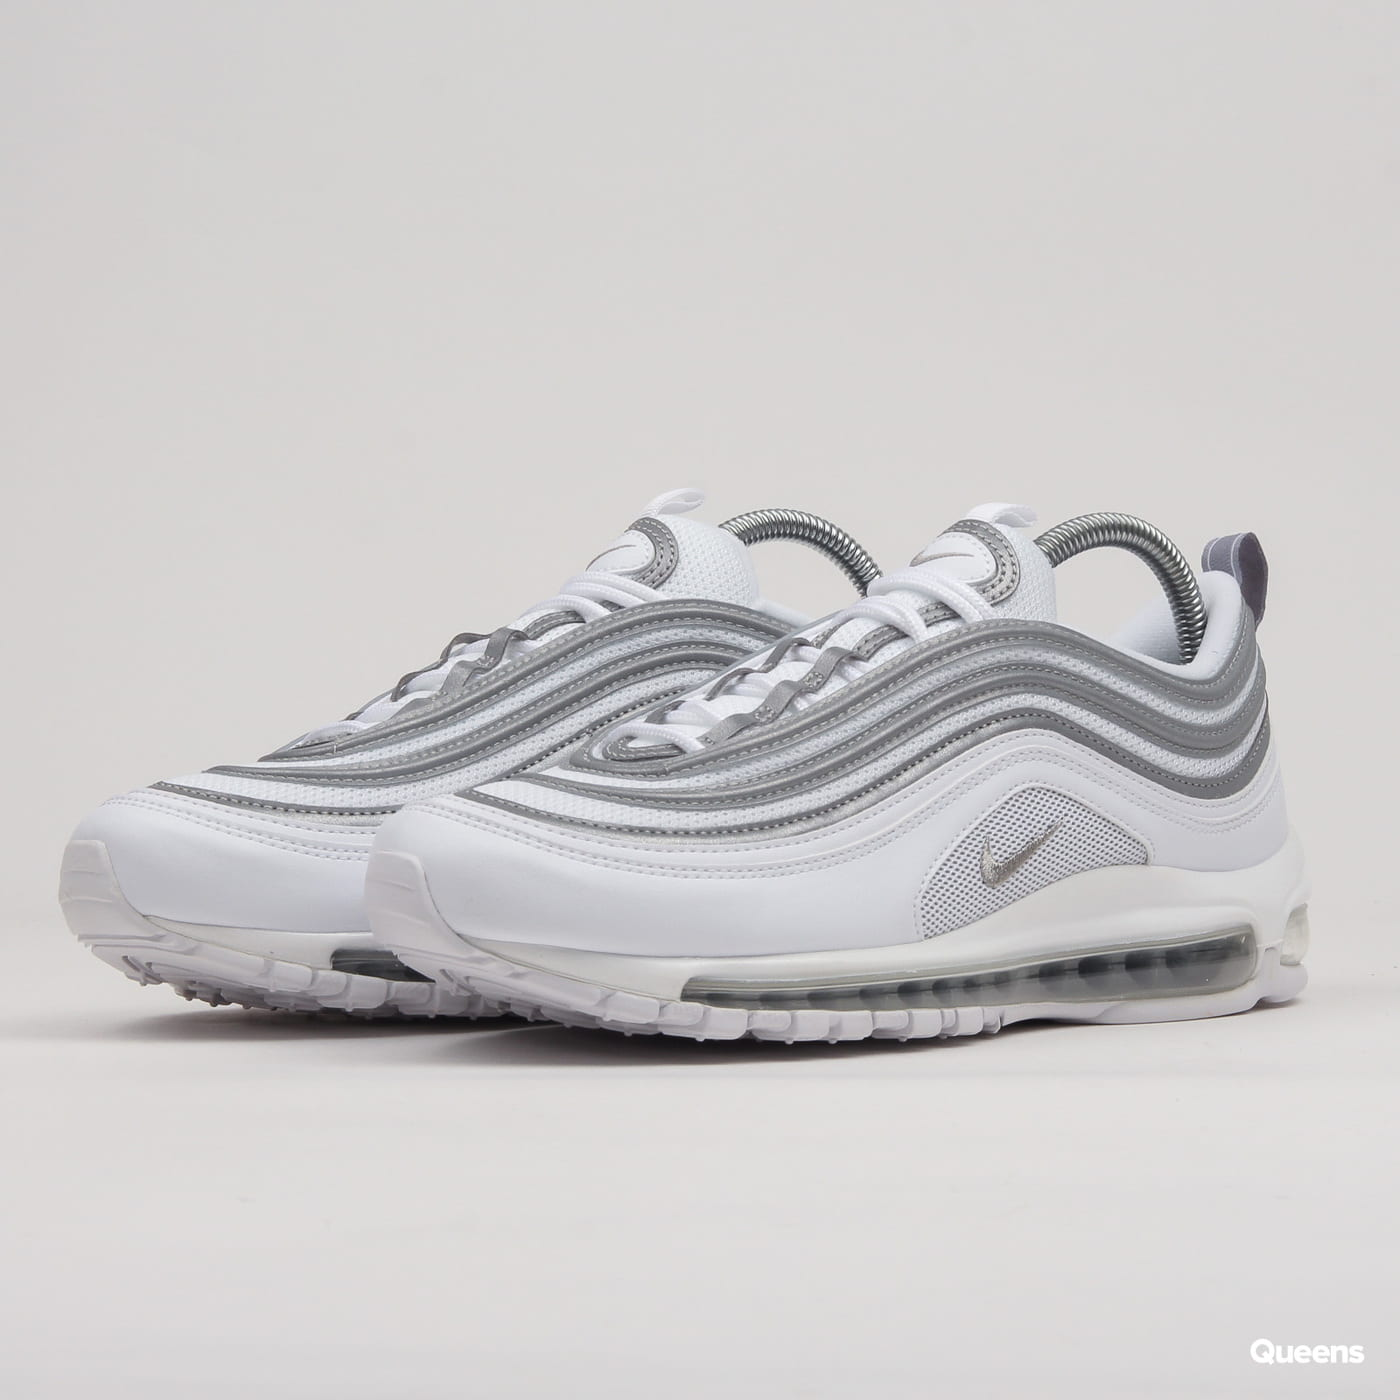 pretty nice bdc3f 2a896 Nike Air Max 97 white / reflect silver - wolf grey